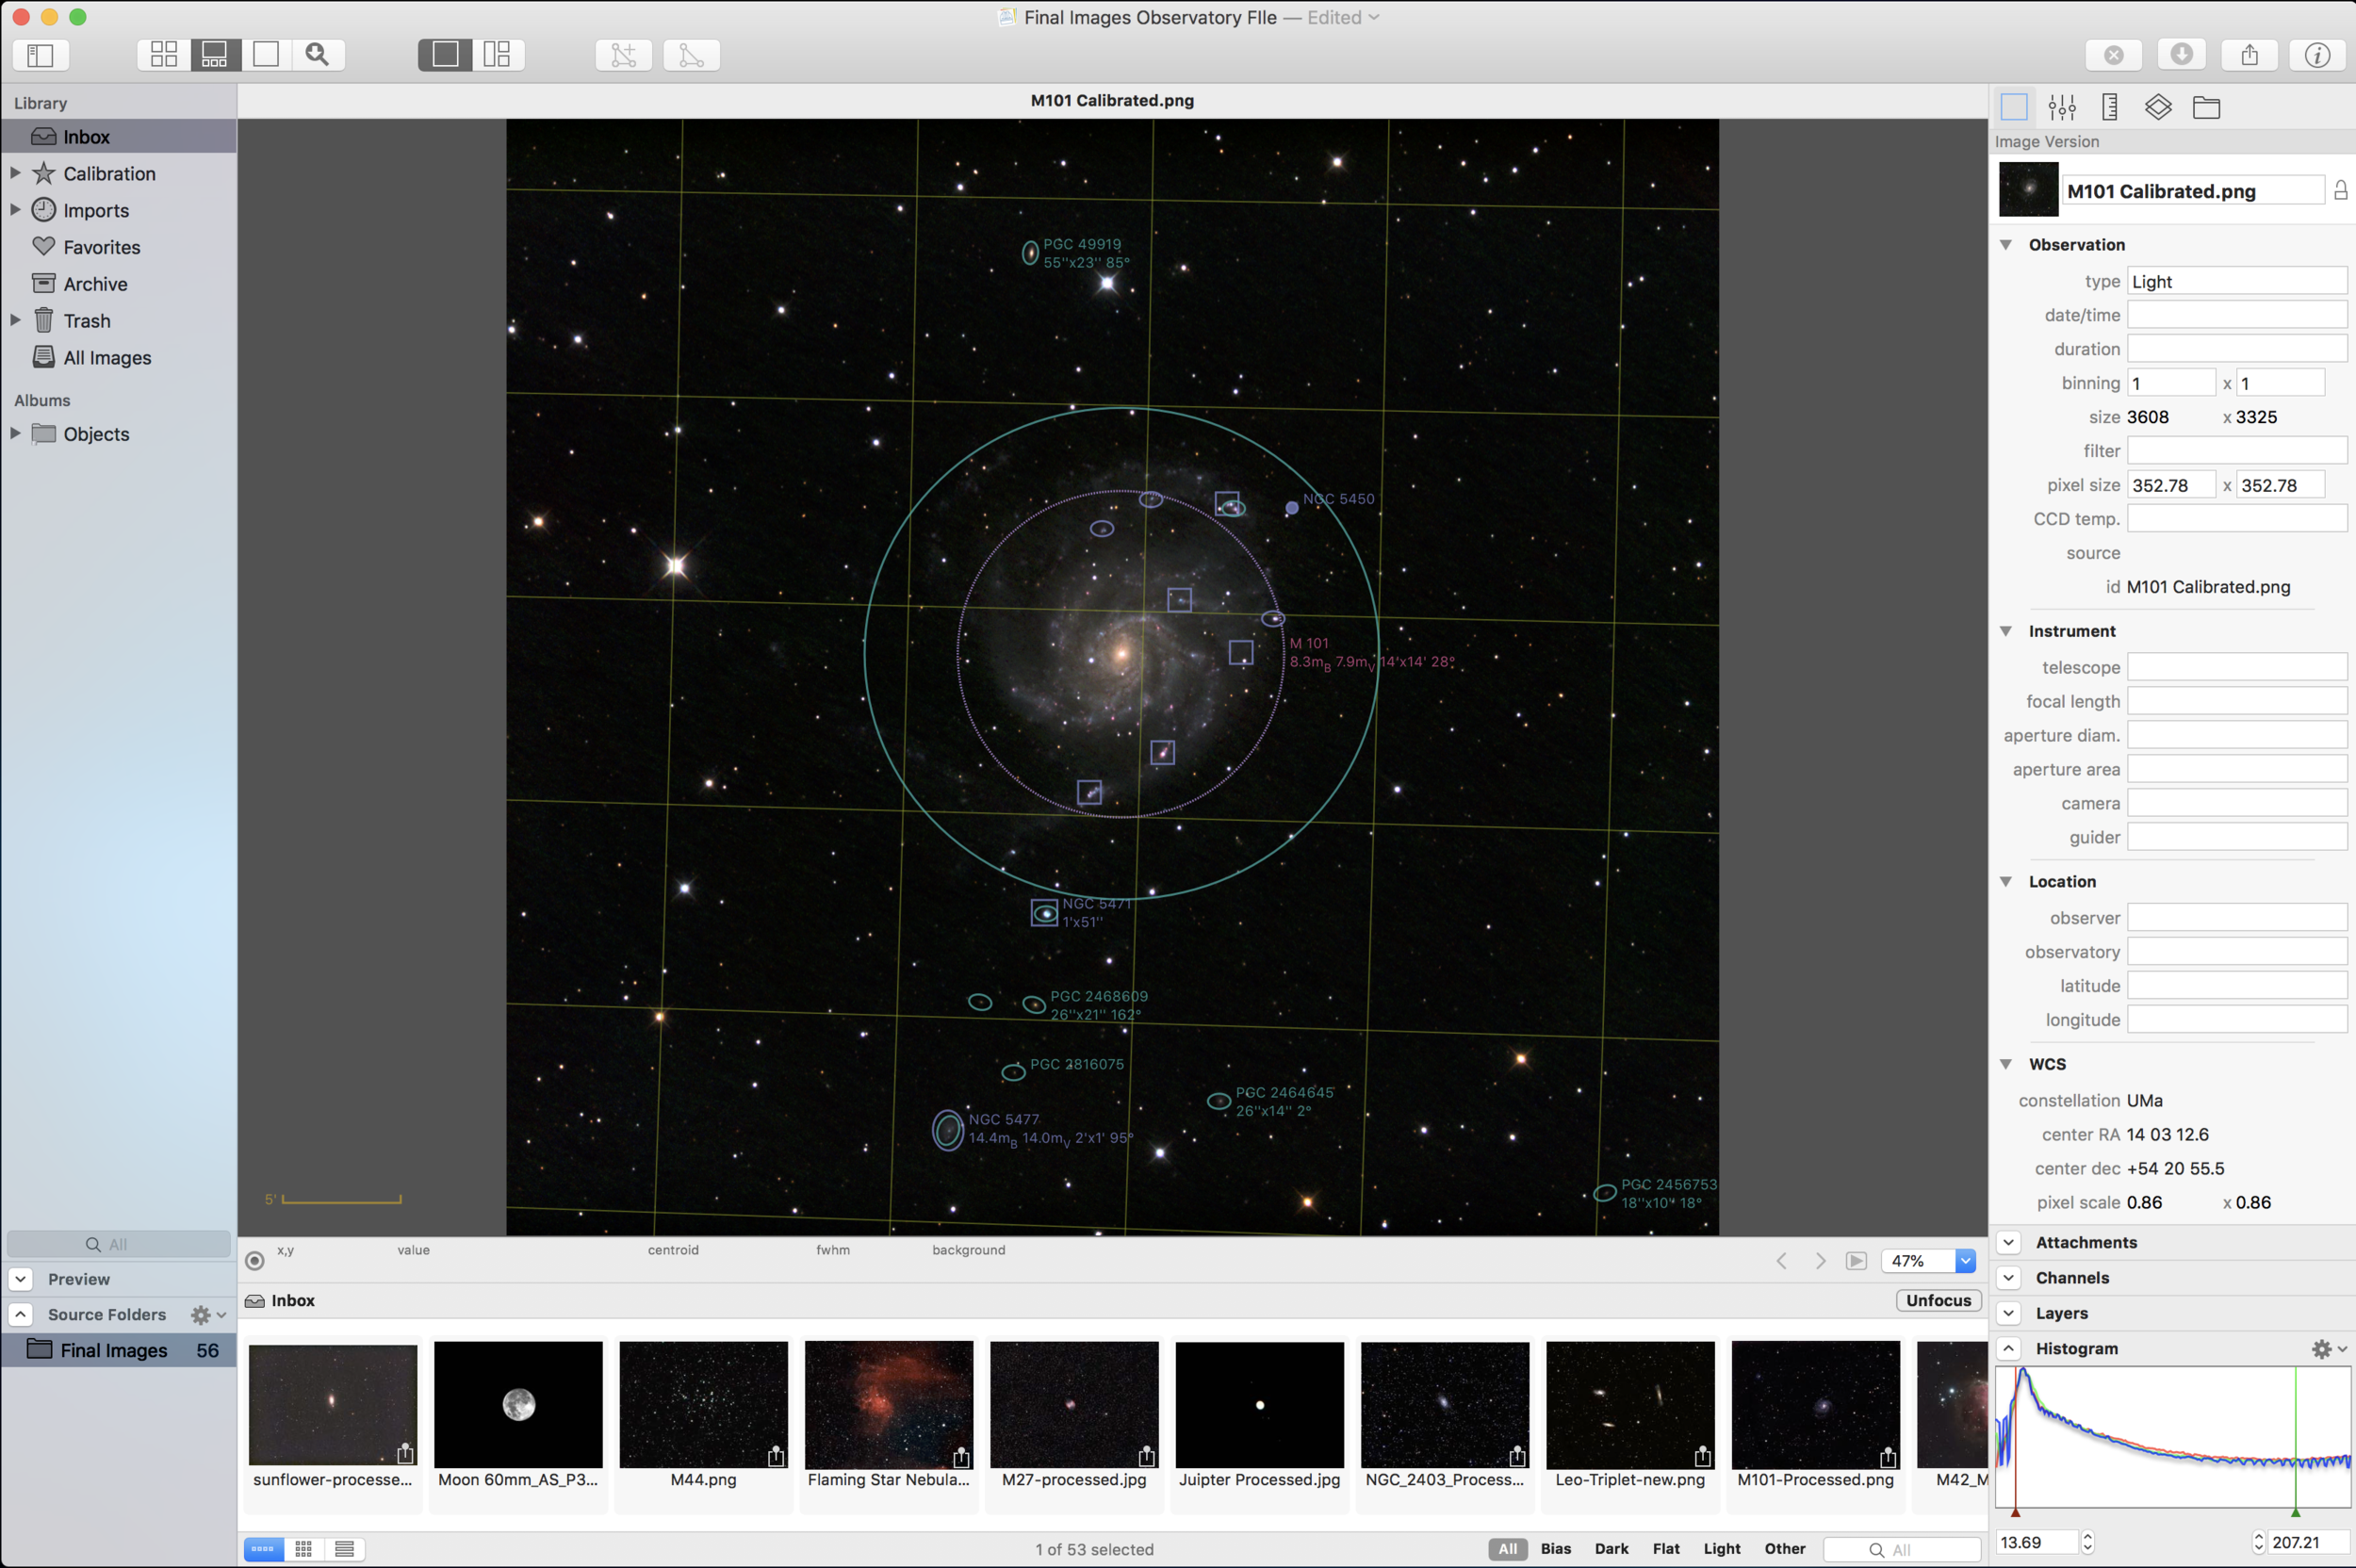 M101 and surrounding nebula are auto tagged once the image is plate solved.